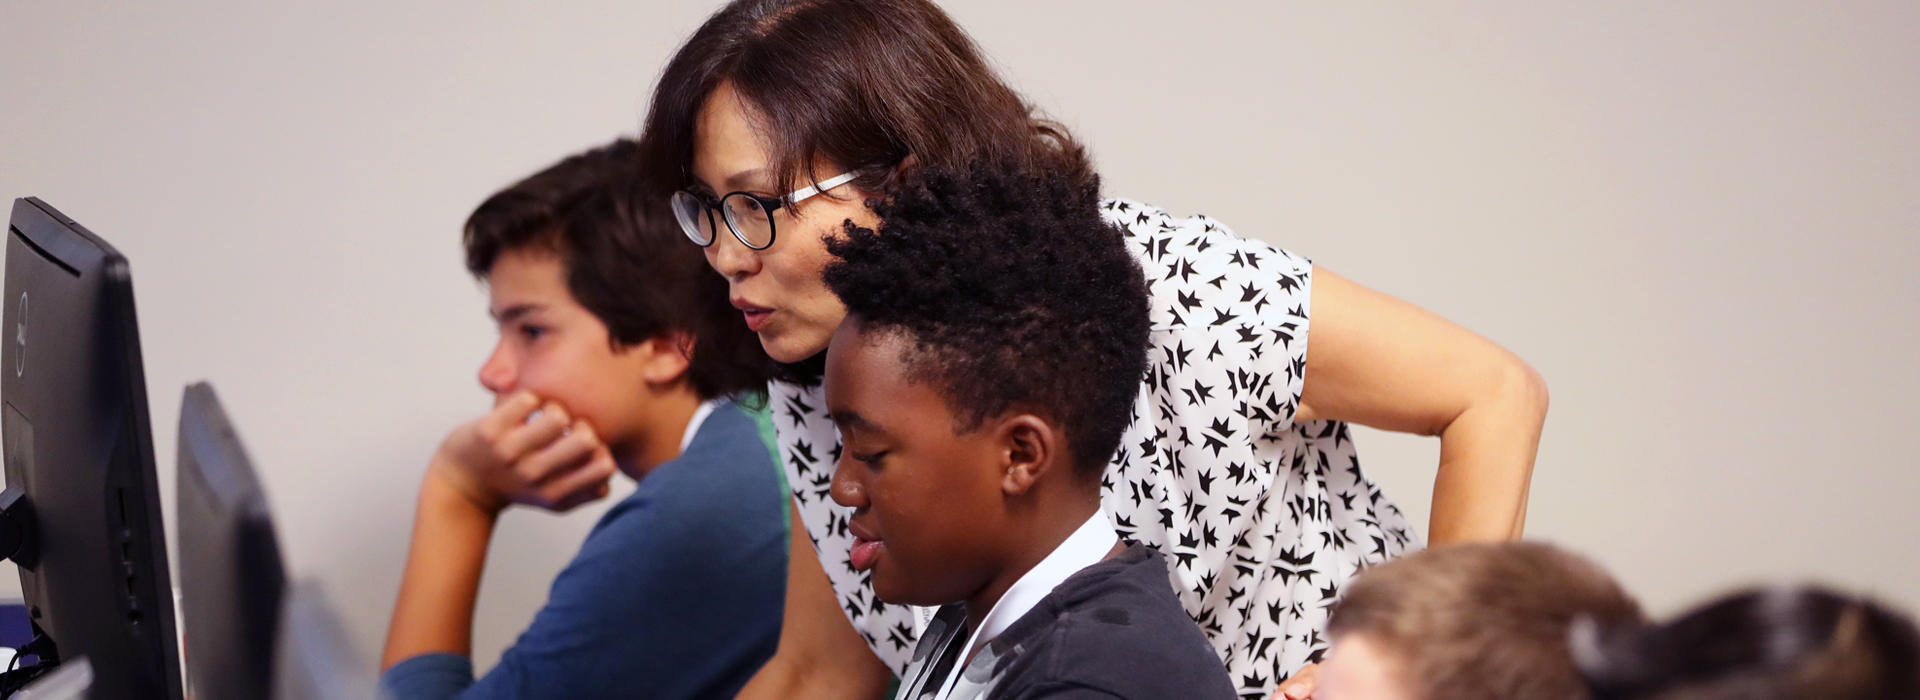 CSUSB welcomes African-American and Latino middle school boys for Verizon Innovative Learning Camp